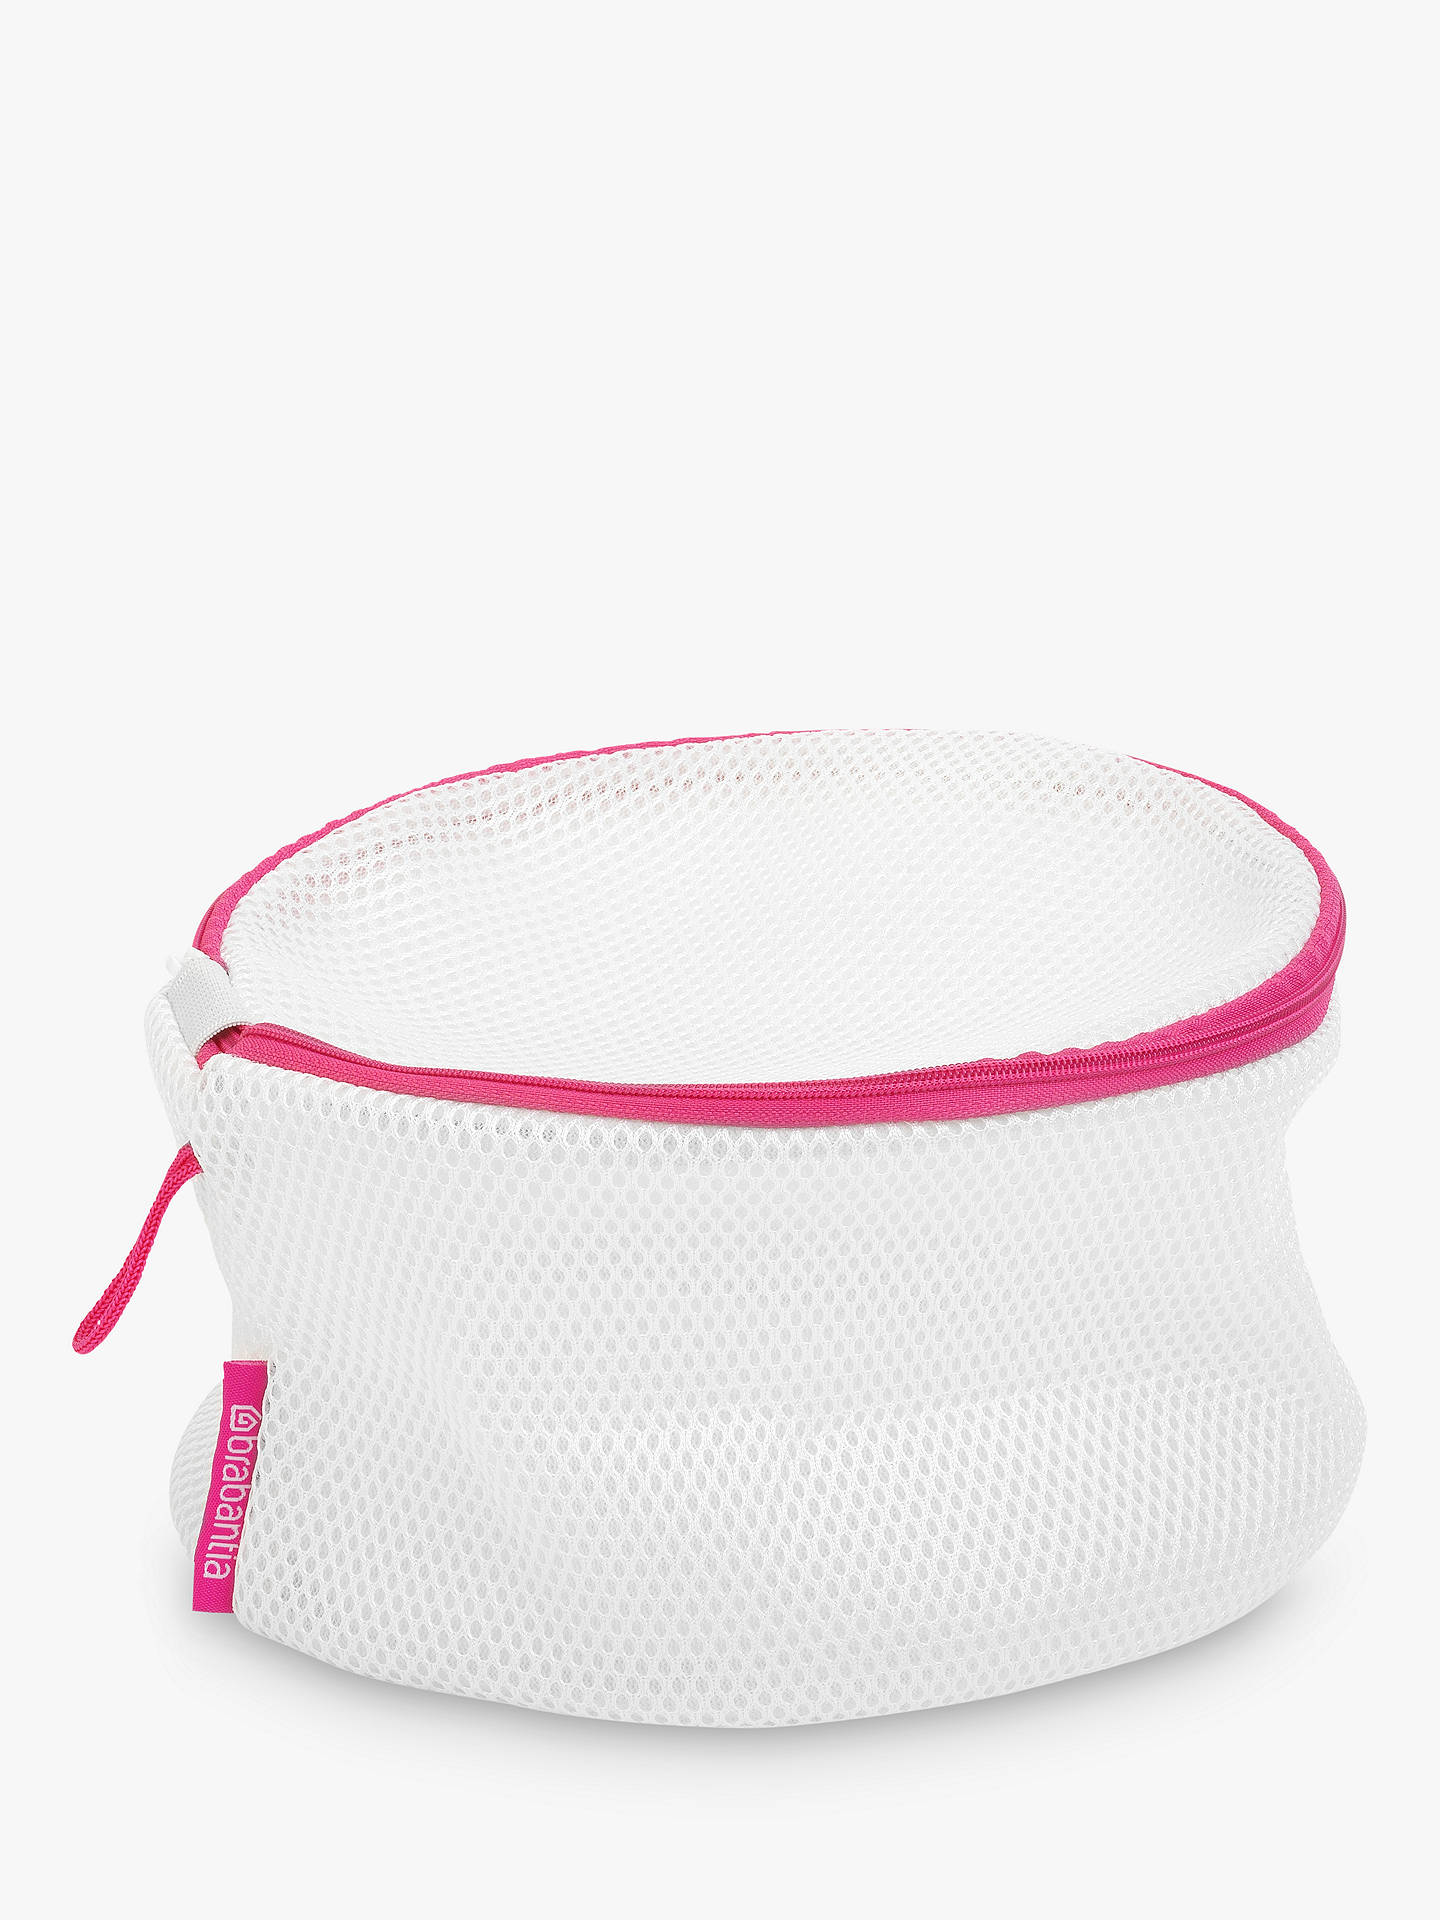 BuyBrabantia Bra Wash Bag Online at johnlewis.com